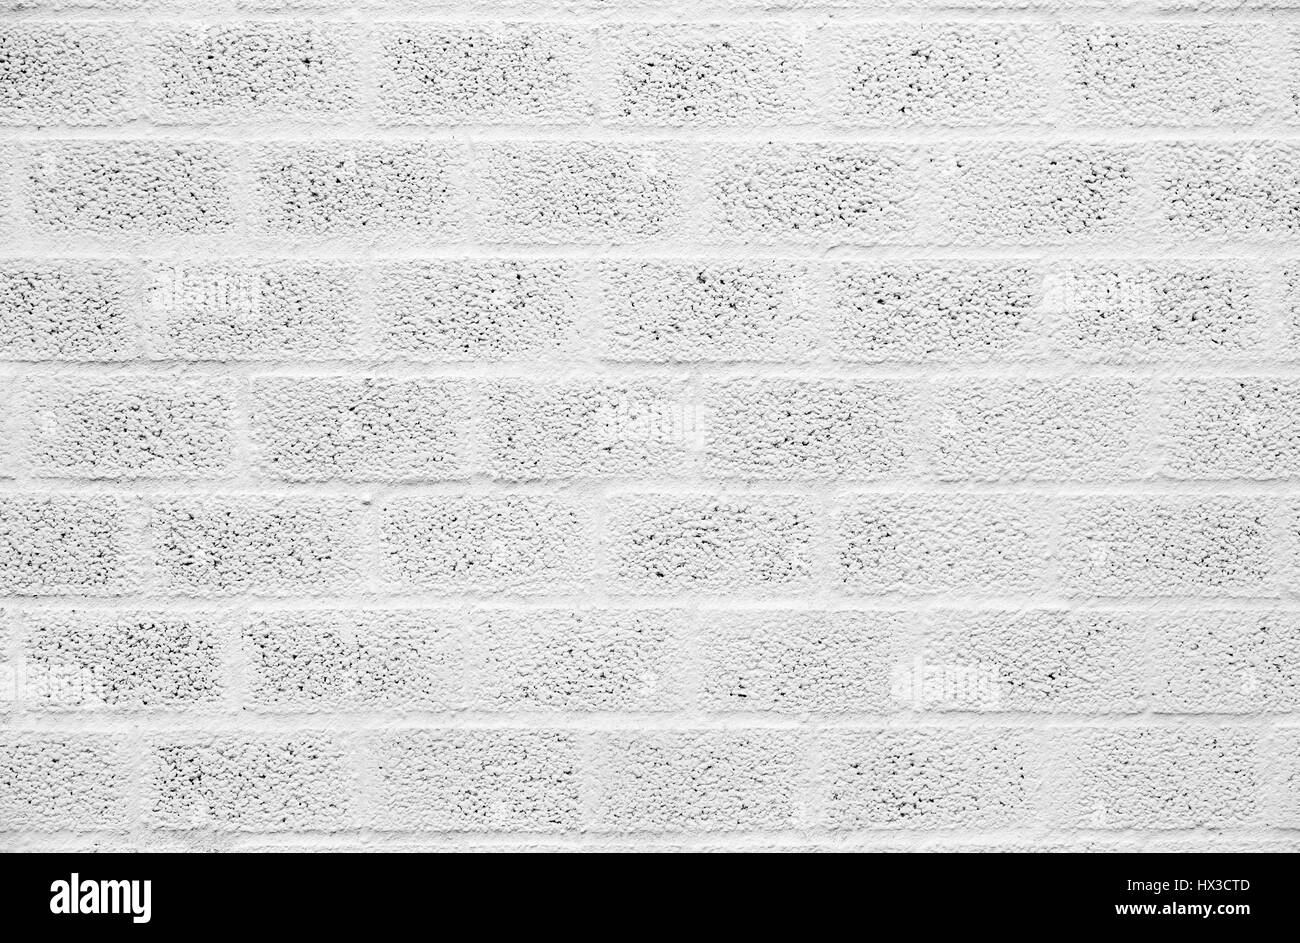 Painted cinder block wall texture - Stock Photo White Painted Concrete Block Wall